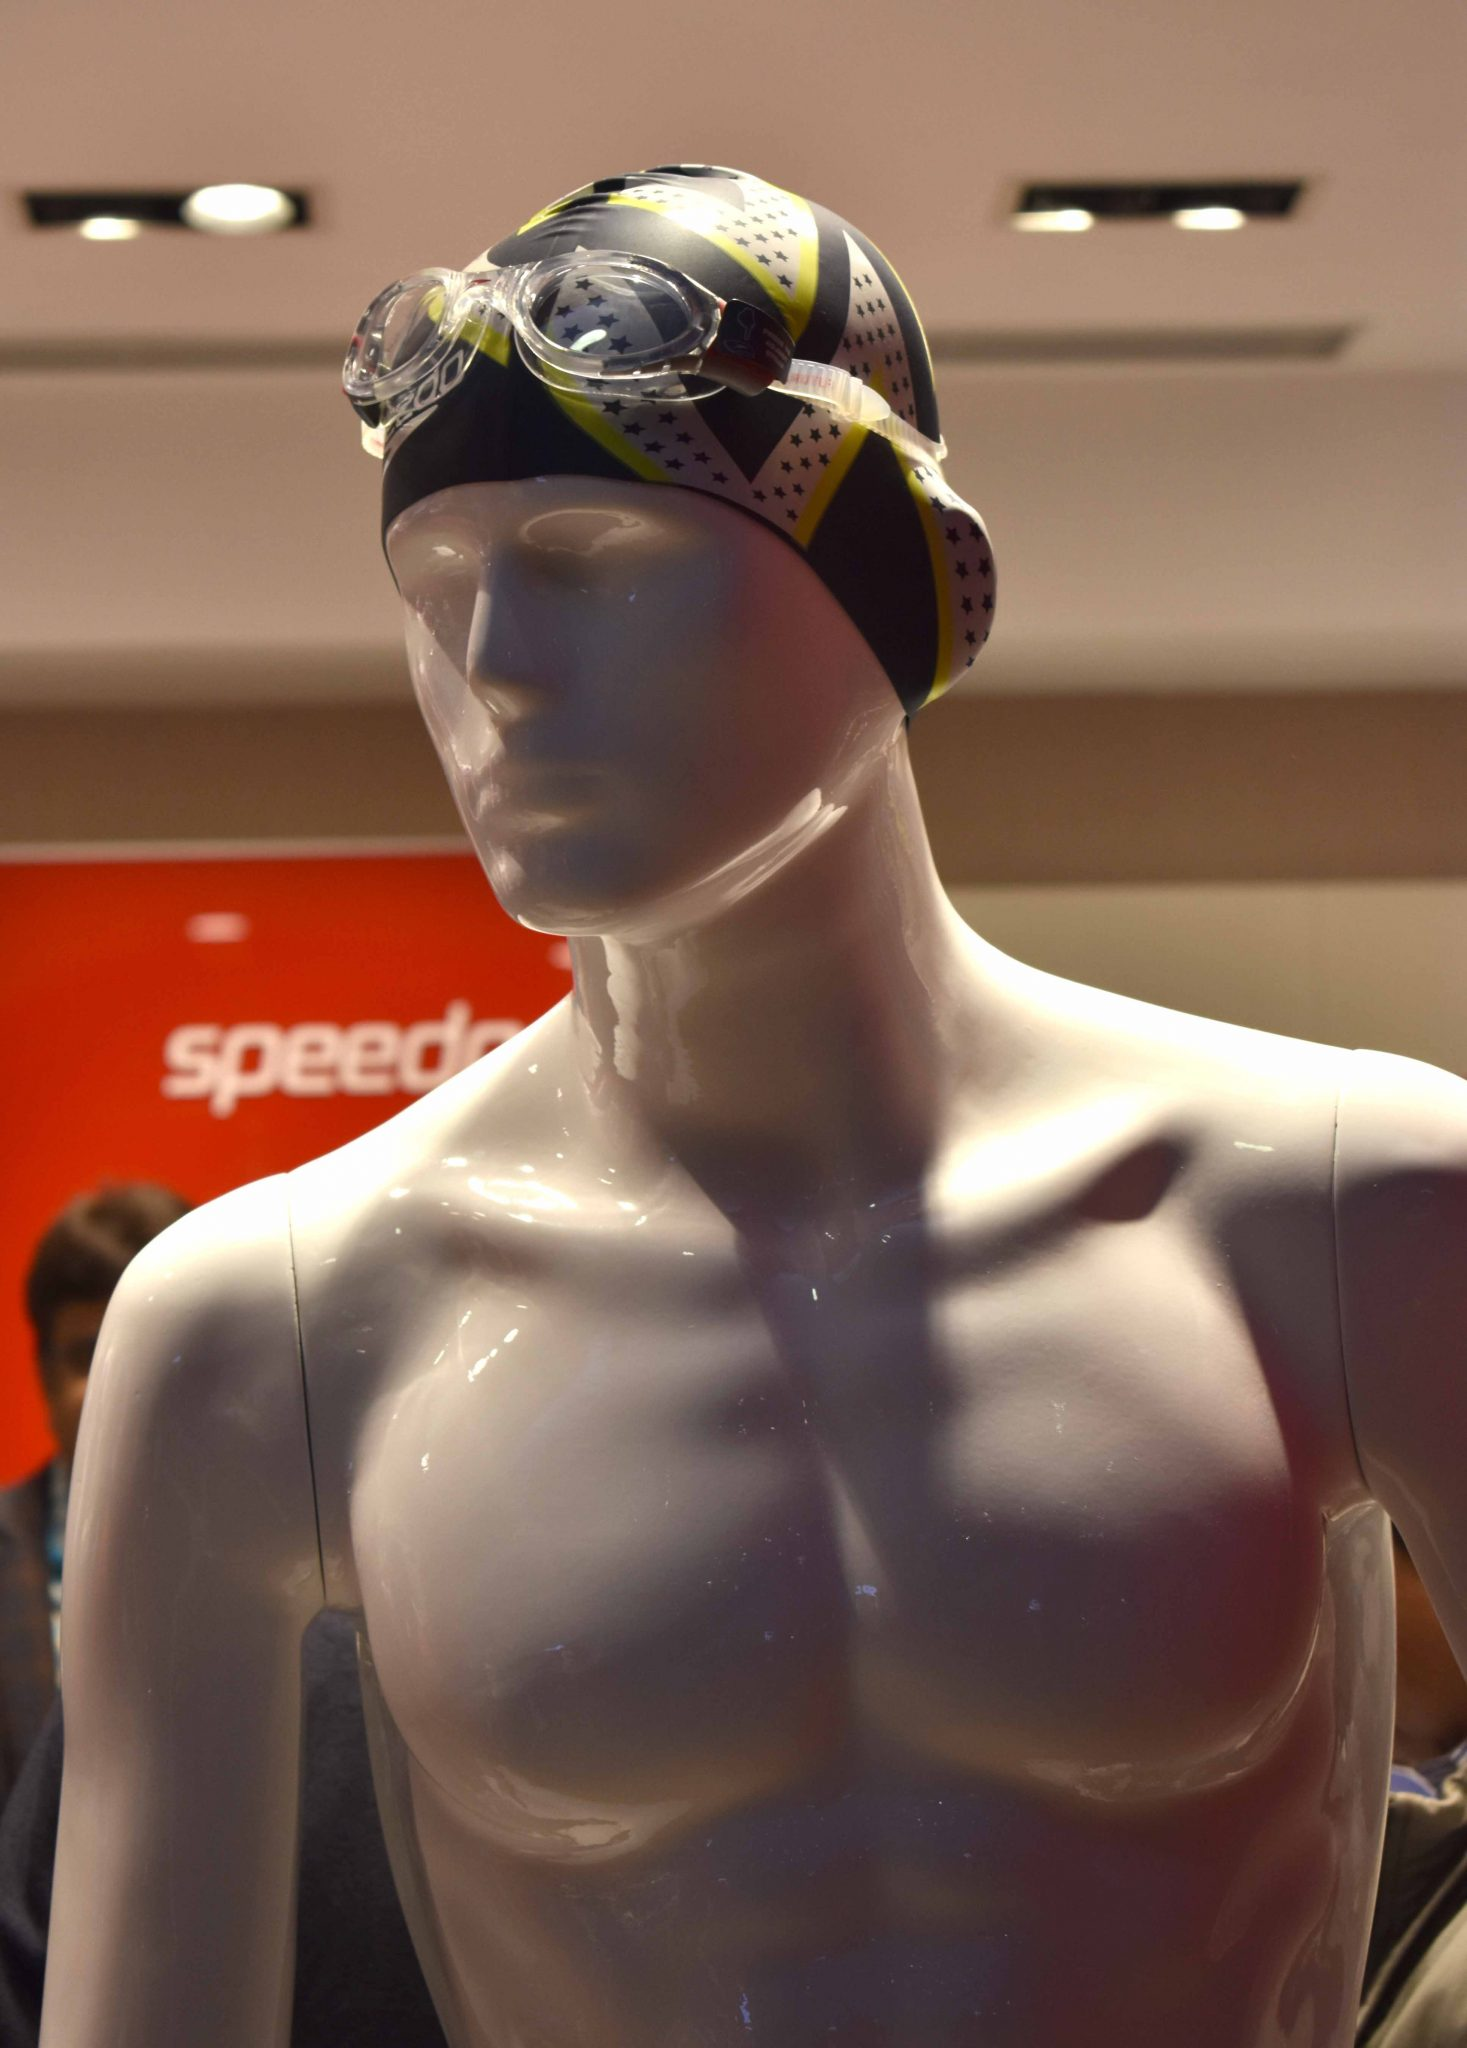 SPEEDO LAUNCHES ITS FIRST STORE IN KOLKATA